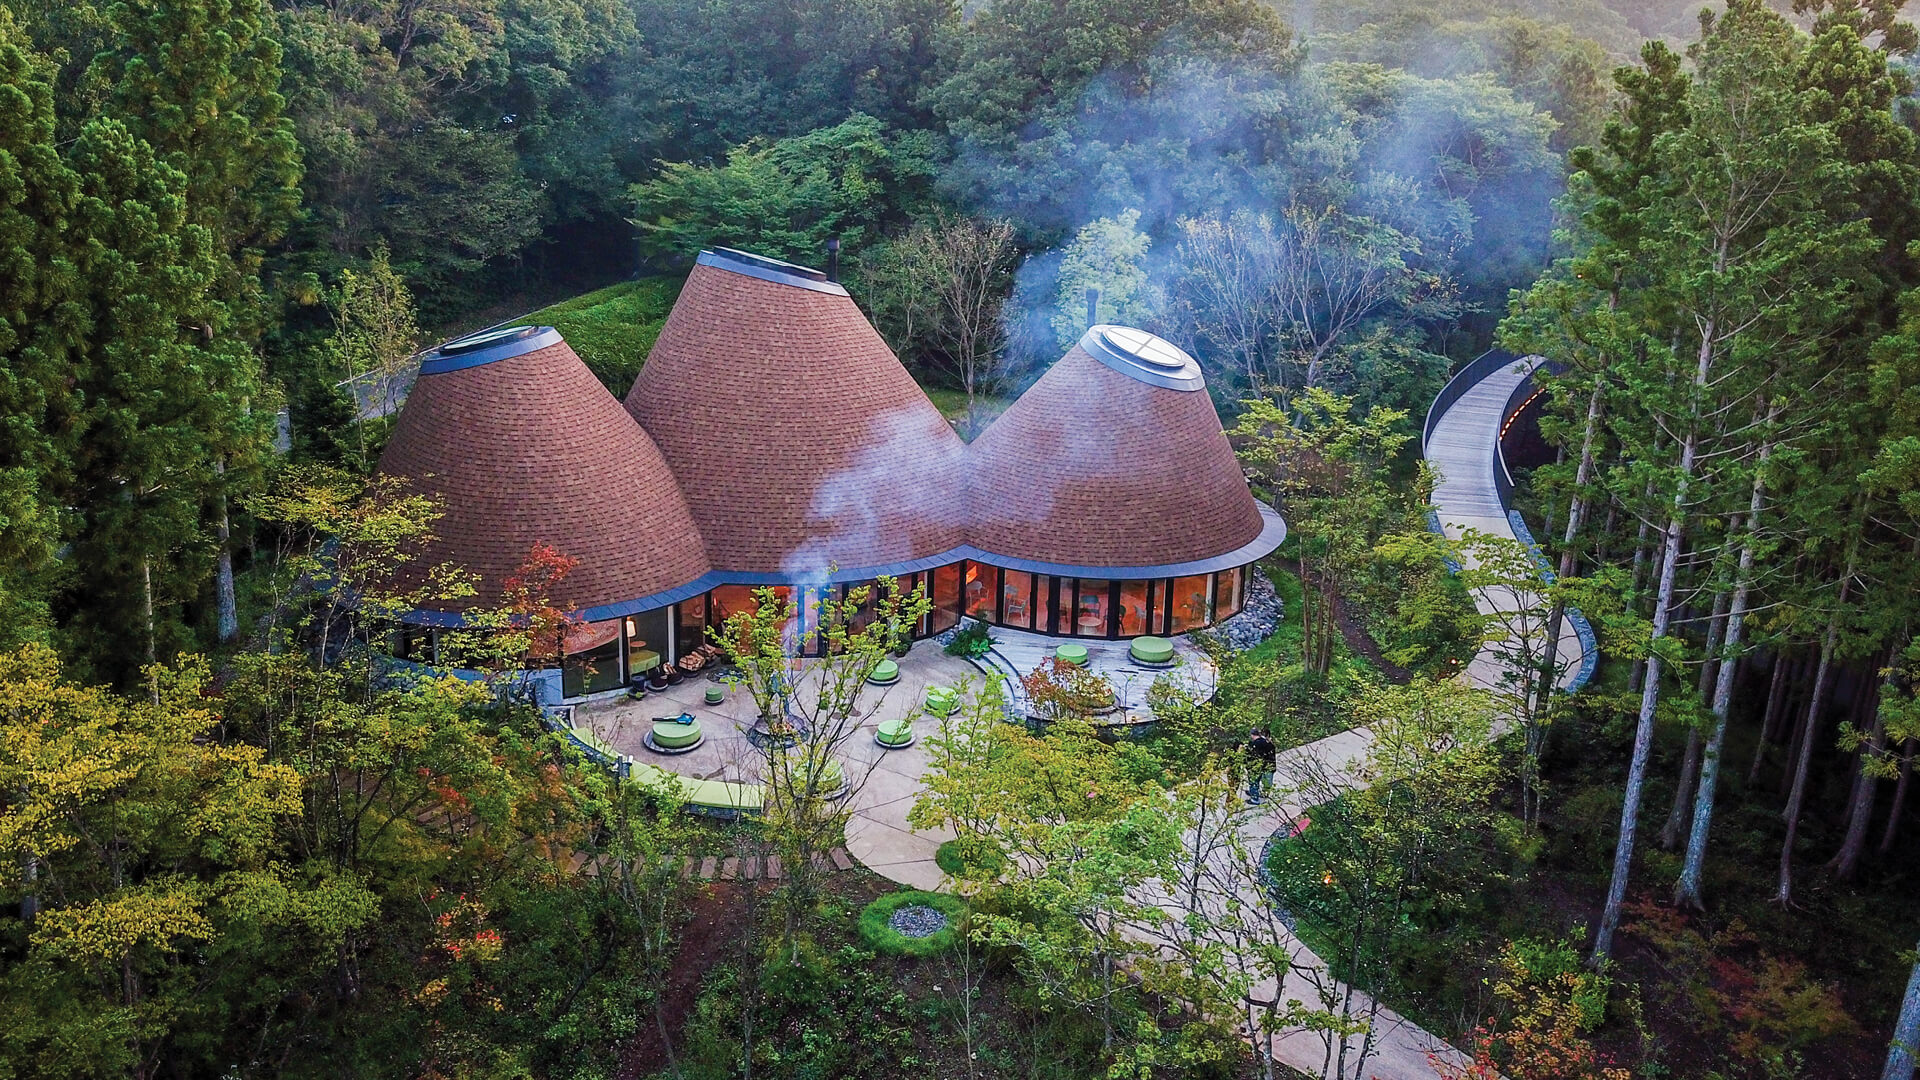 The PokoPoko Clubhouse by Klein Dytham Architecture has all the makings of an enchanted cabins in the woods | PokoPoko Clubhouse | Klein Dytham Architecture | STIRworld